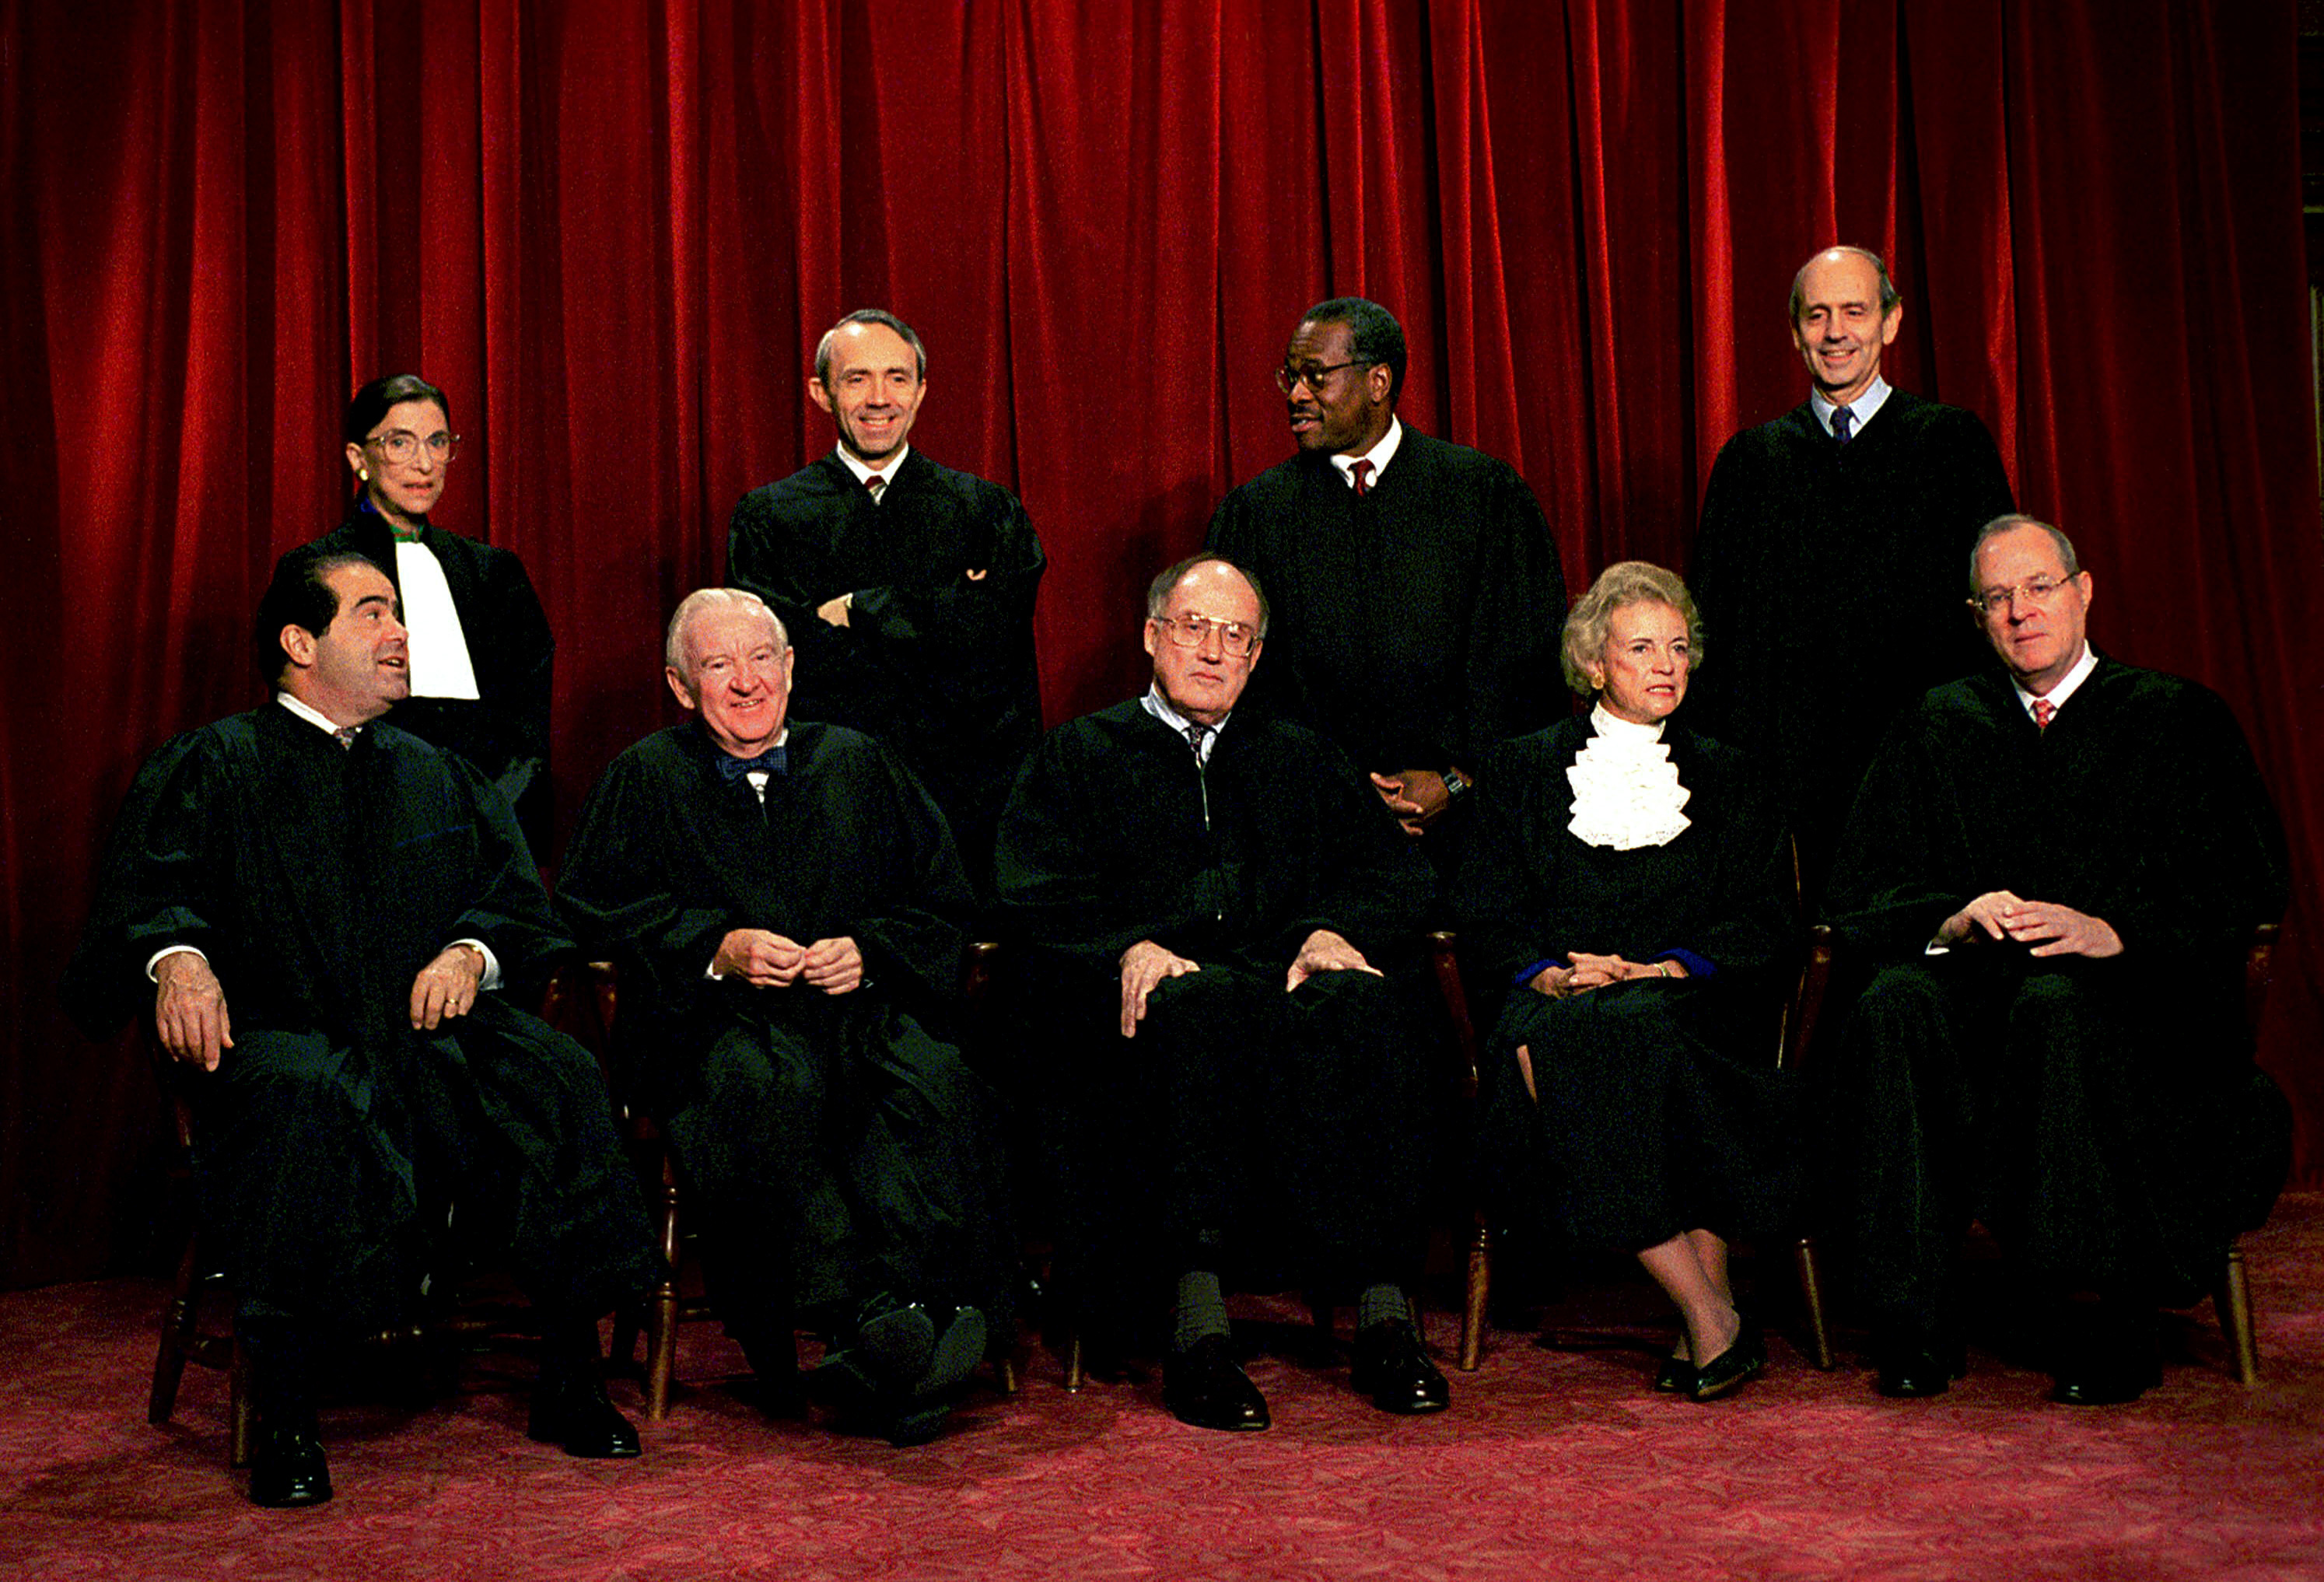 Justices of the U.S. Supreme Court pose for a group portrait in 1994 (from left, front): Associate Justices Antonin Scalia and John Paul Stevens, Chief Justice William Rehnquist, Associate Justices Sandra Day O'Connor and Anthony Kennedy; (from left, back) Associate Justices Ruth Bader Ginsburg, David Souter, Clarence Thomas and Stephen Breyer. J. Scott Applewhite/AP